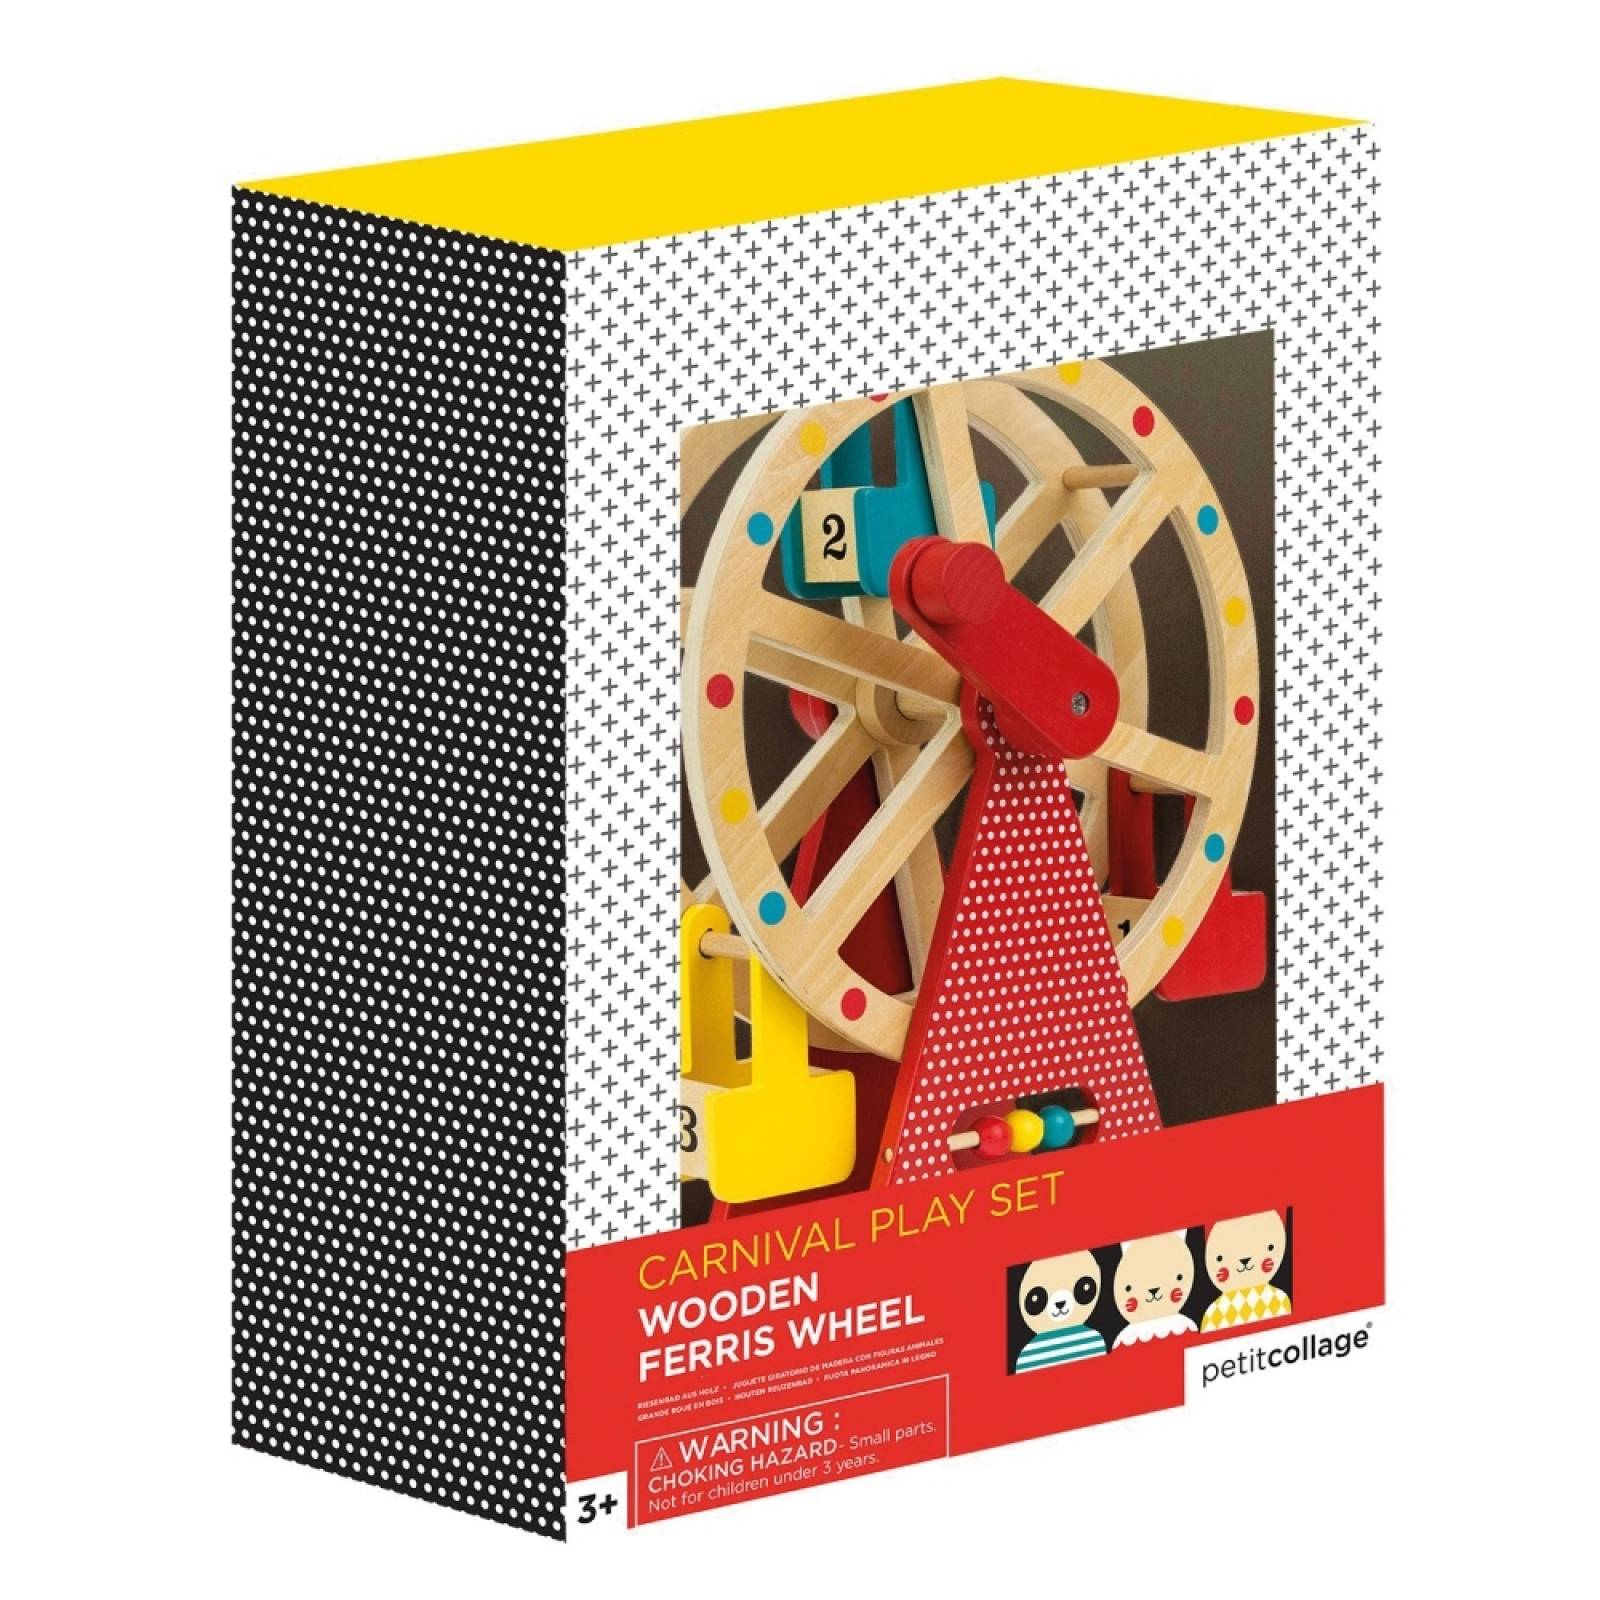 Wooden Carnival Play Set Ferris Wheel Toy By Petit Collage